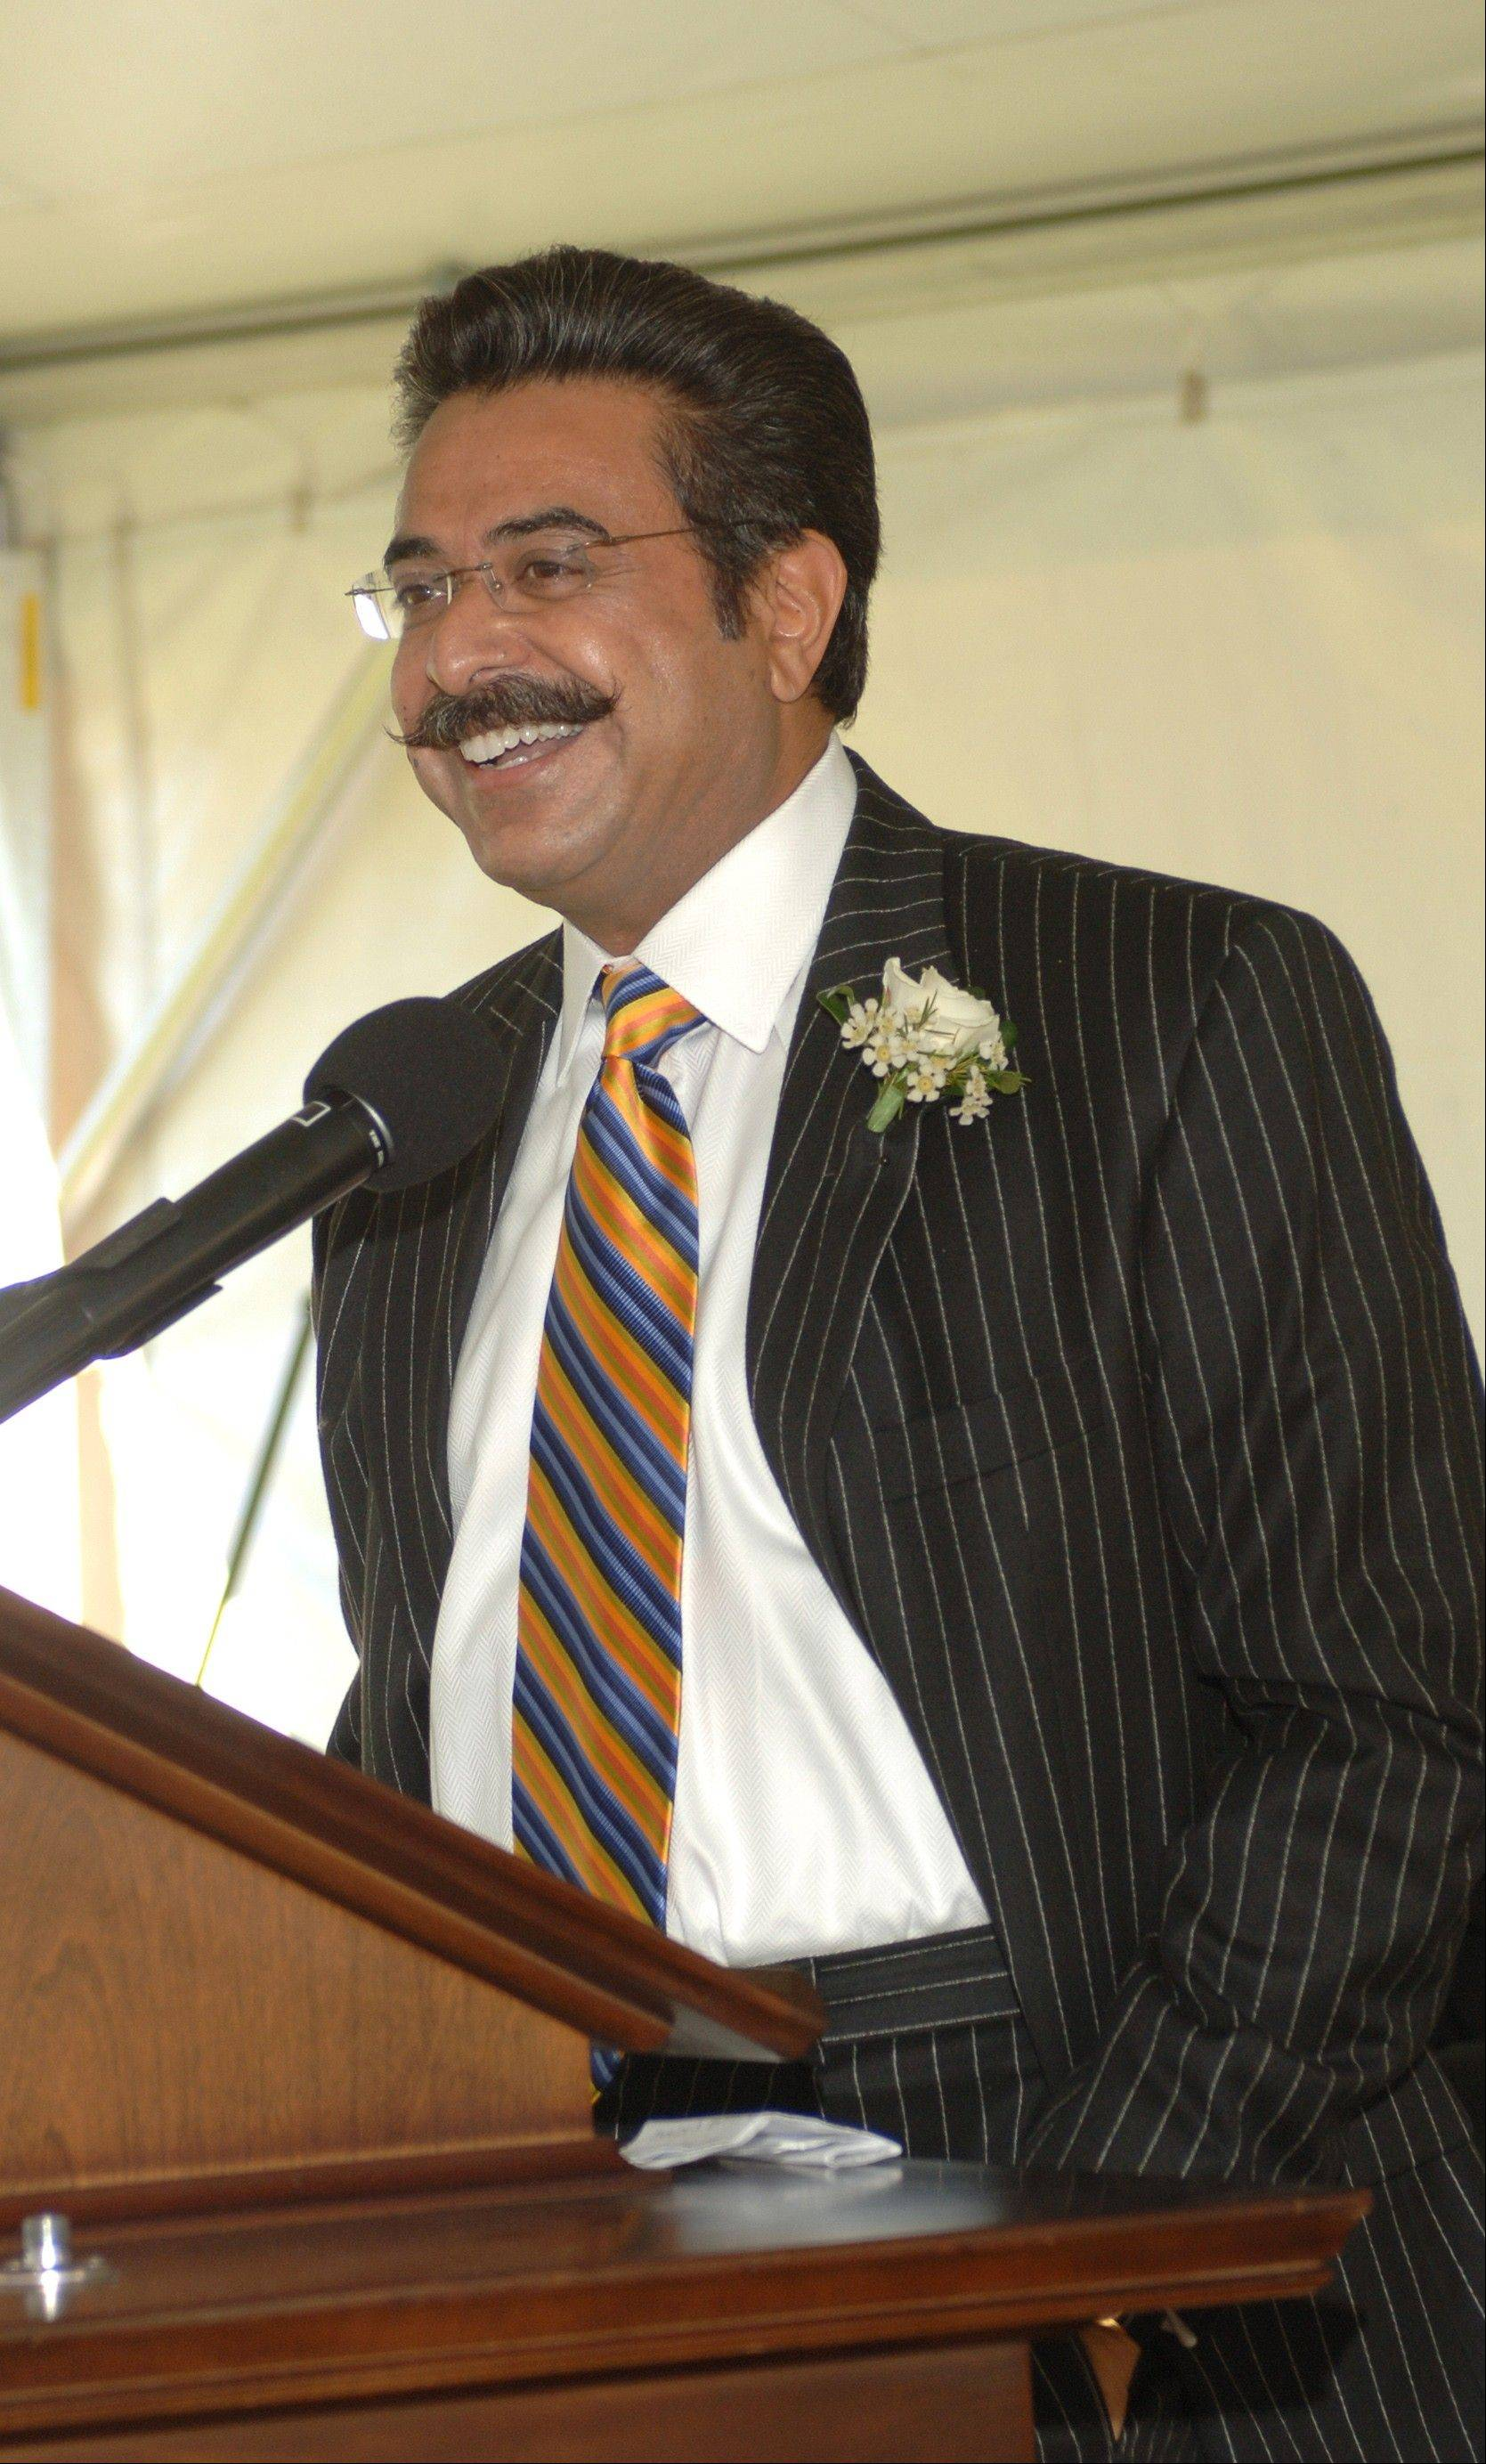 Shahid Khan, owner of the Jacksonville Jaguars, has been a major donor to the University of Illinois. He�ll speak at commencement on May 12.